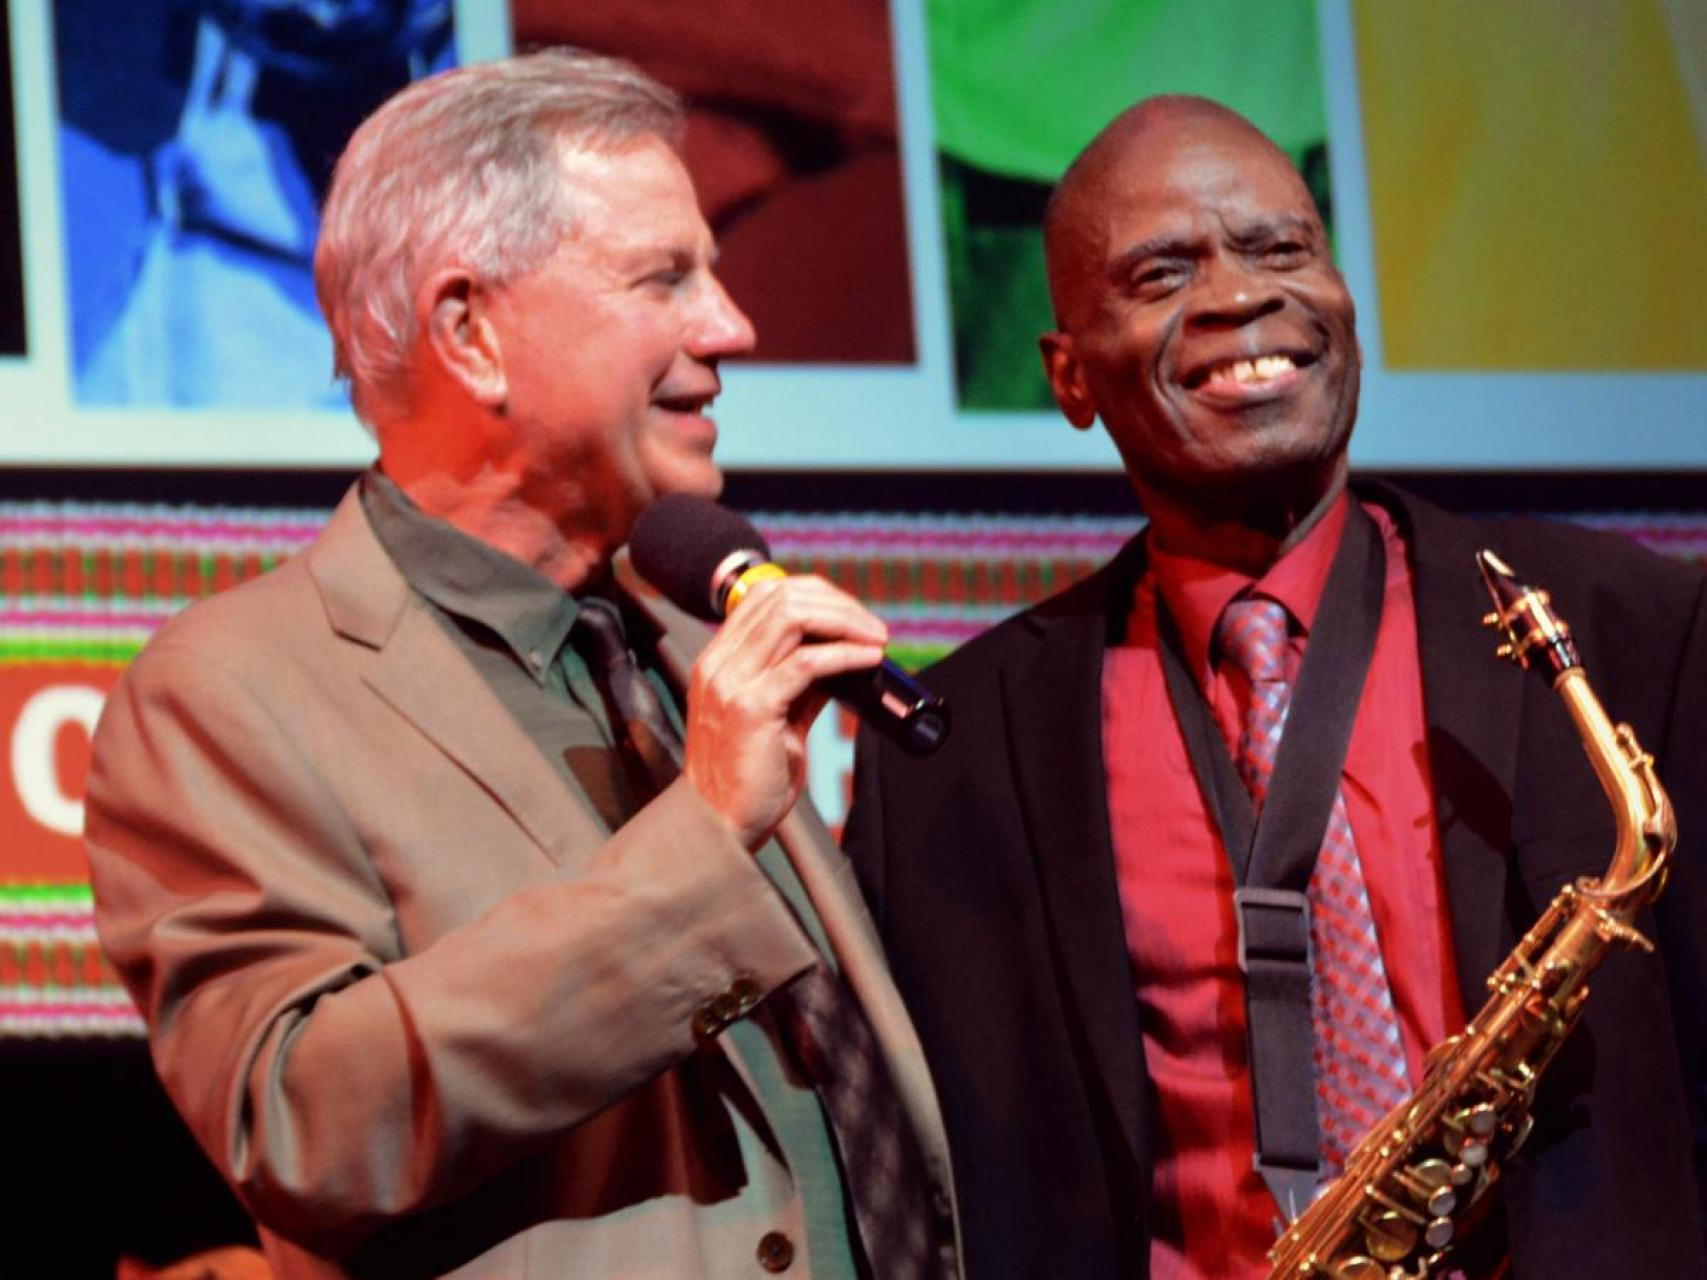 Wayne Martin and Maceo Parker arm in arm on stage. Wayne holding a microphone, Maceo with a saxophone